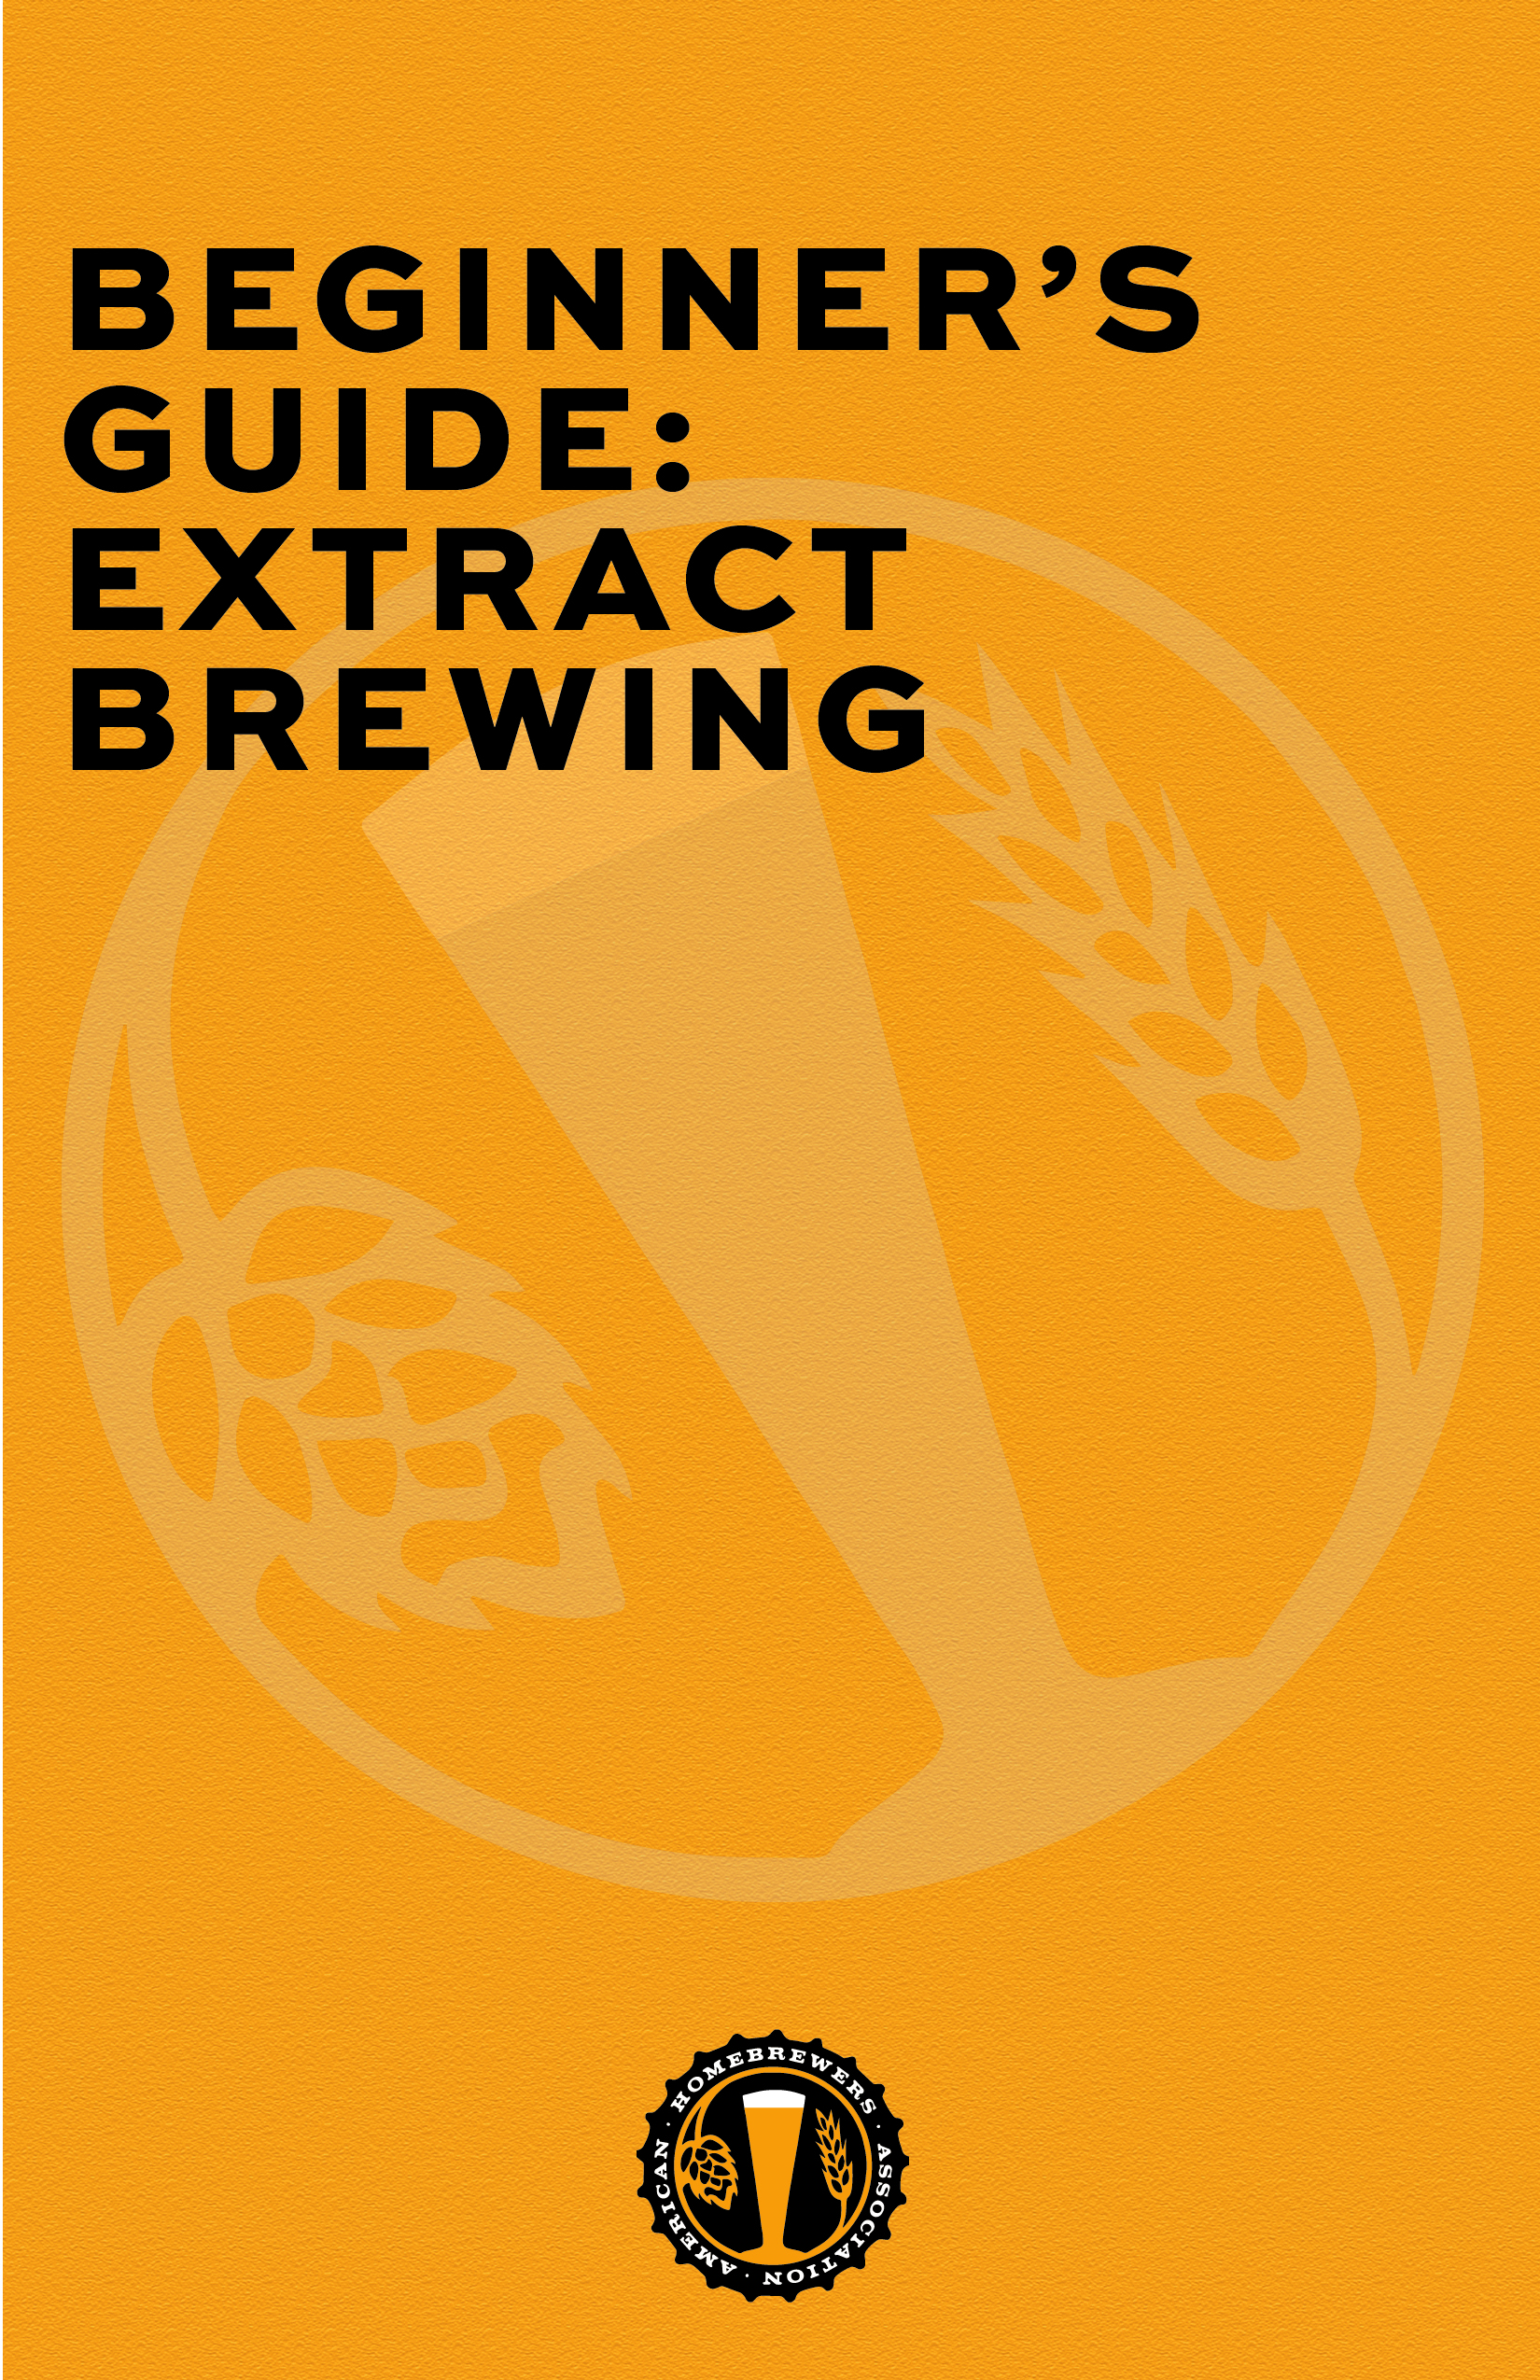 Beginners Guide To Extract Brewing Book.jpg